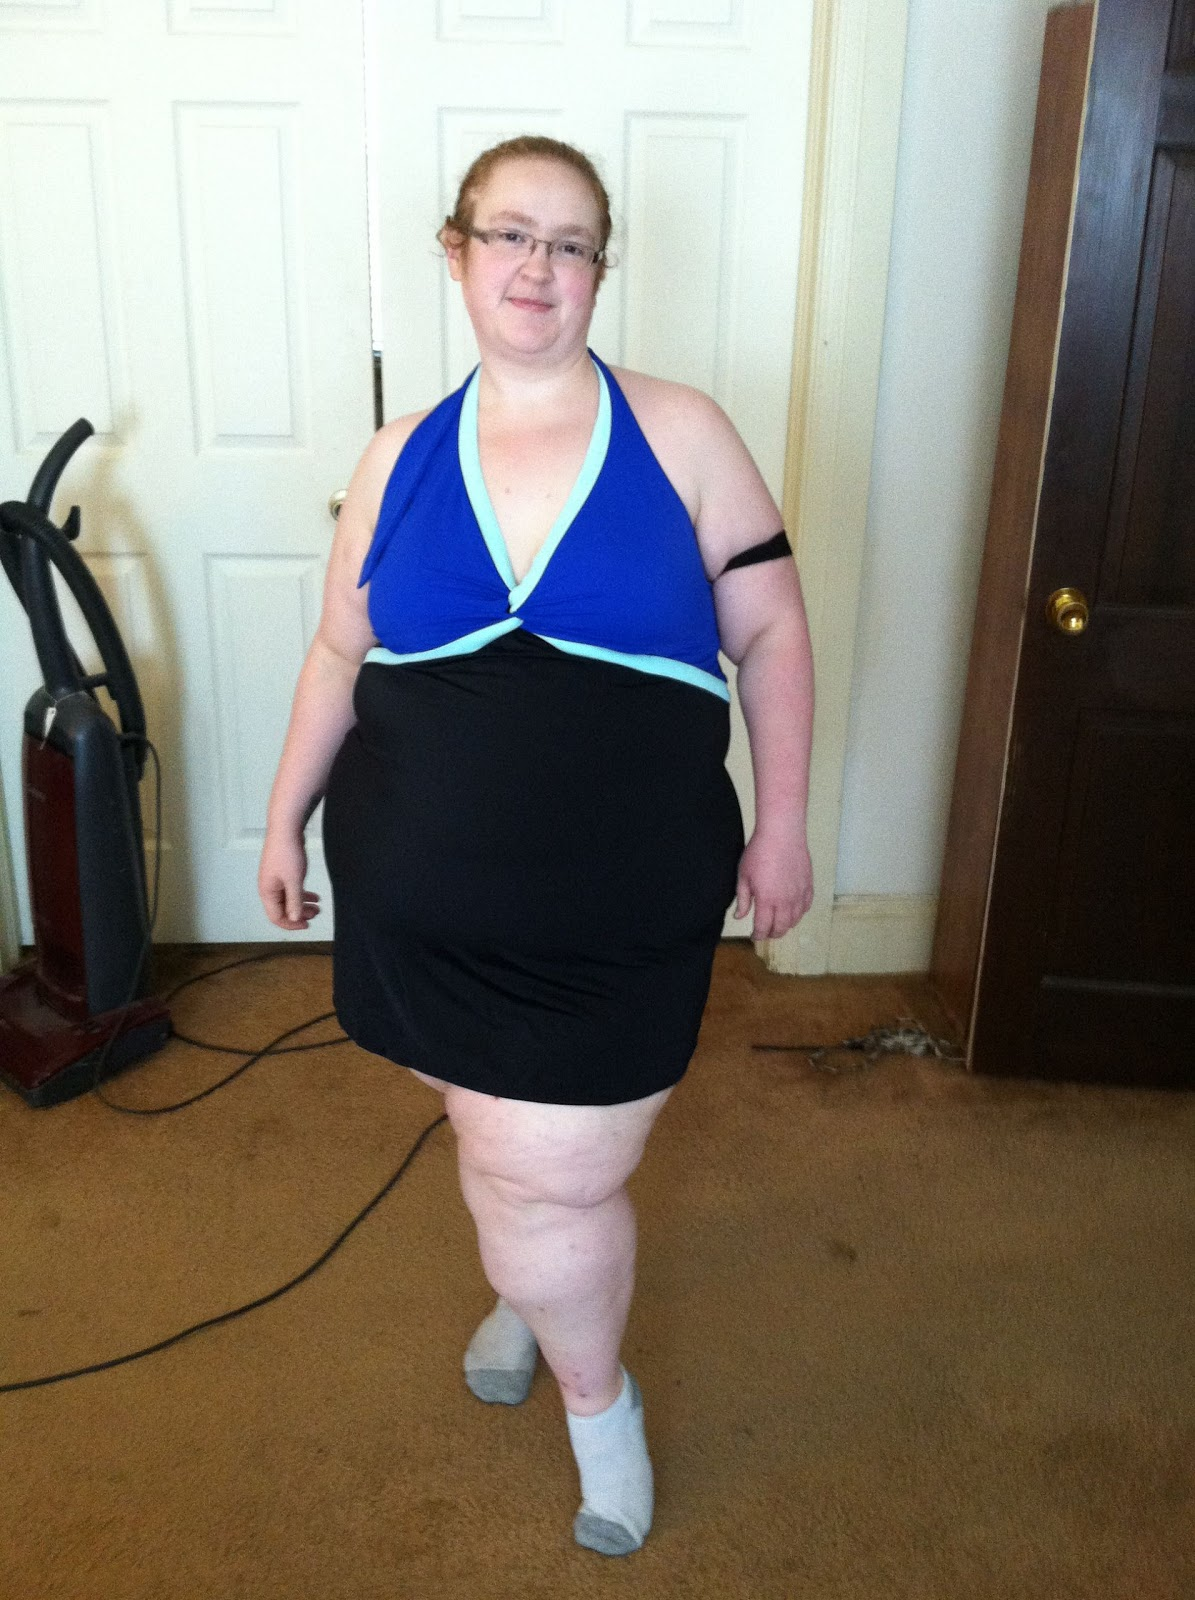 Pictures Of Fat People In Bathing Suits 88